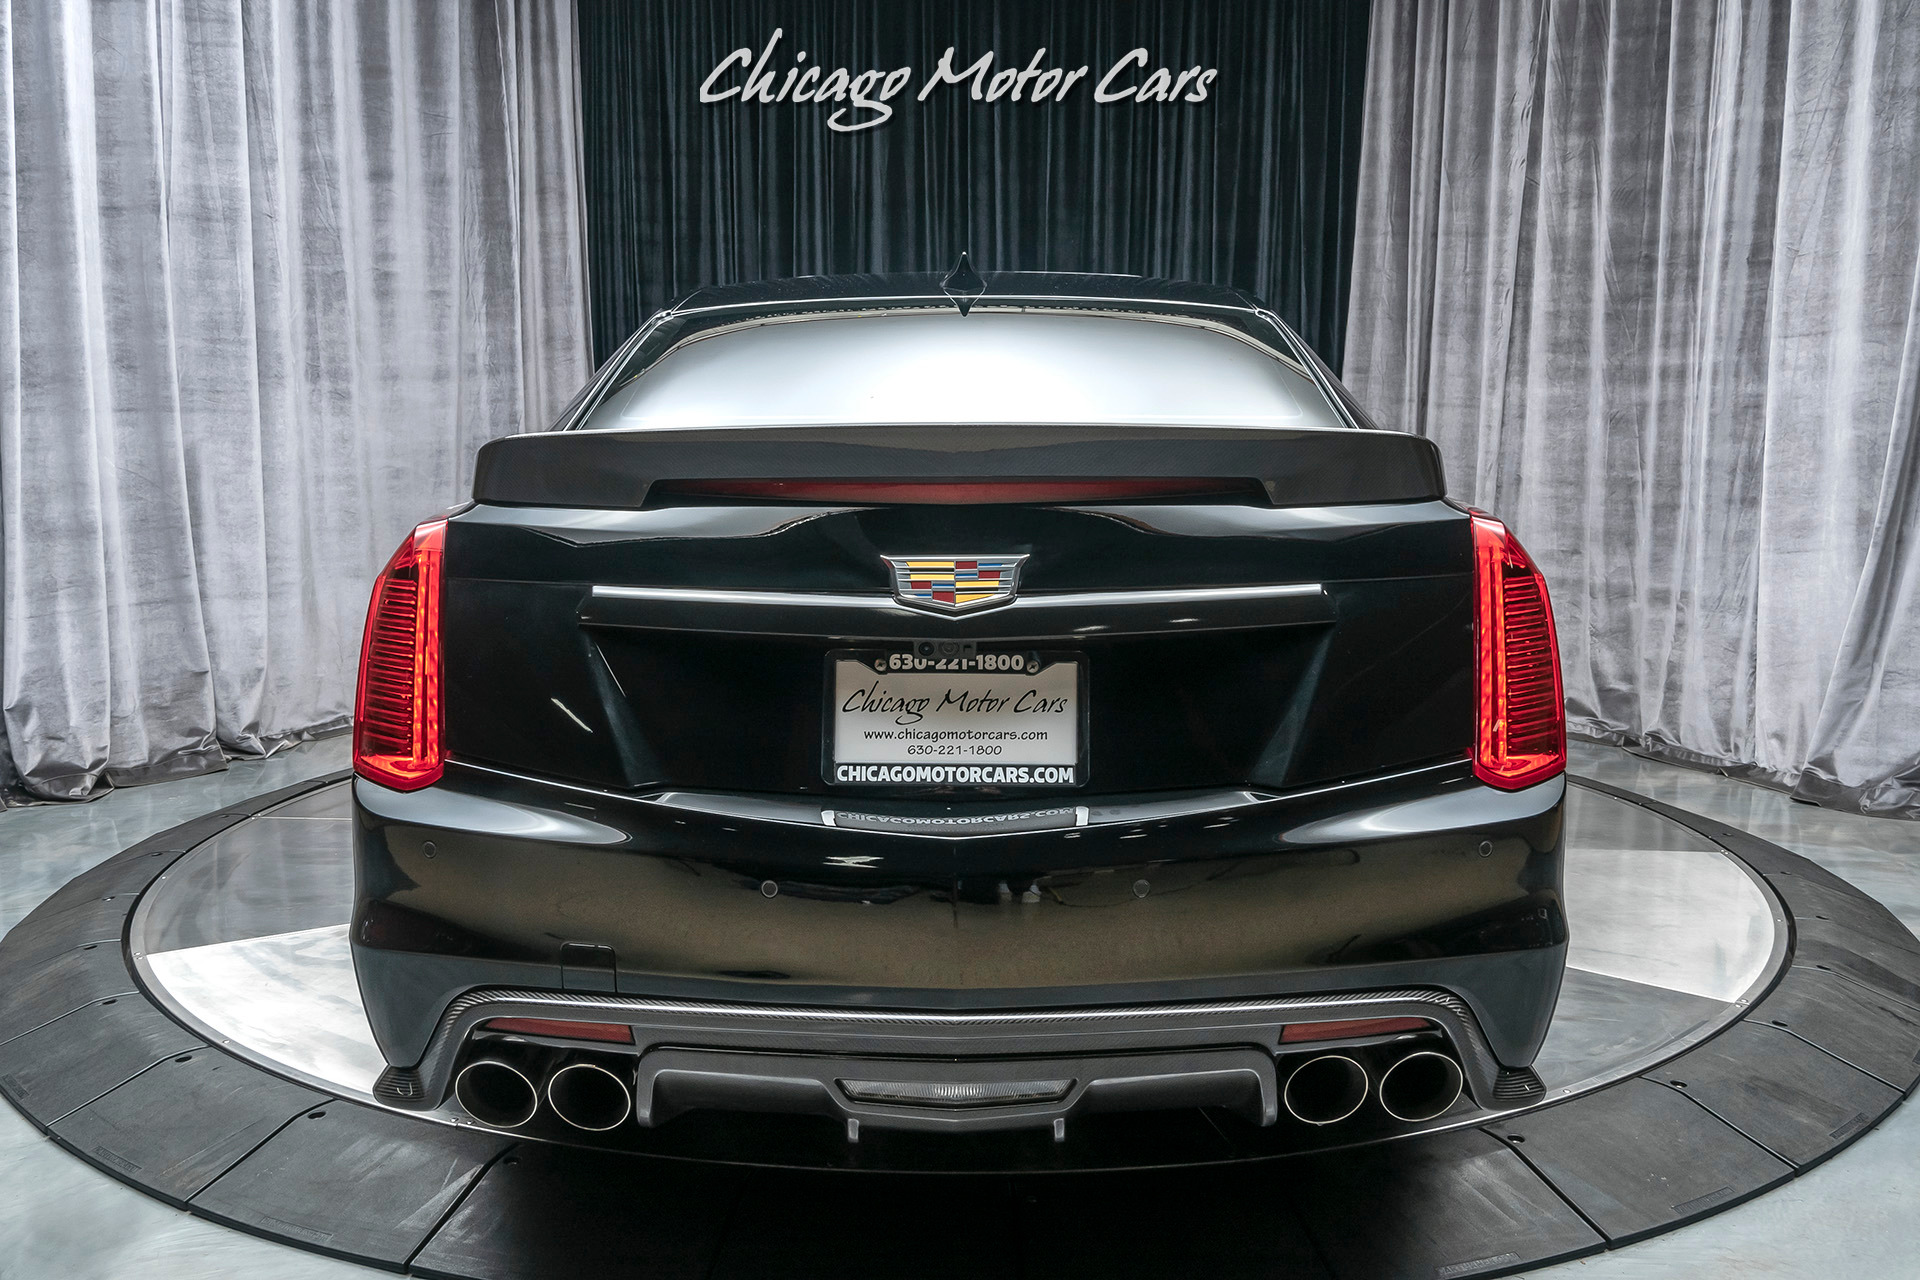 Used-2017-Cadillac-CTS-V-Sedan-1100-WHP-91-SEC-QUARTER-MILE-So-much-INVESTED